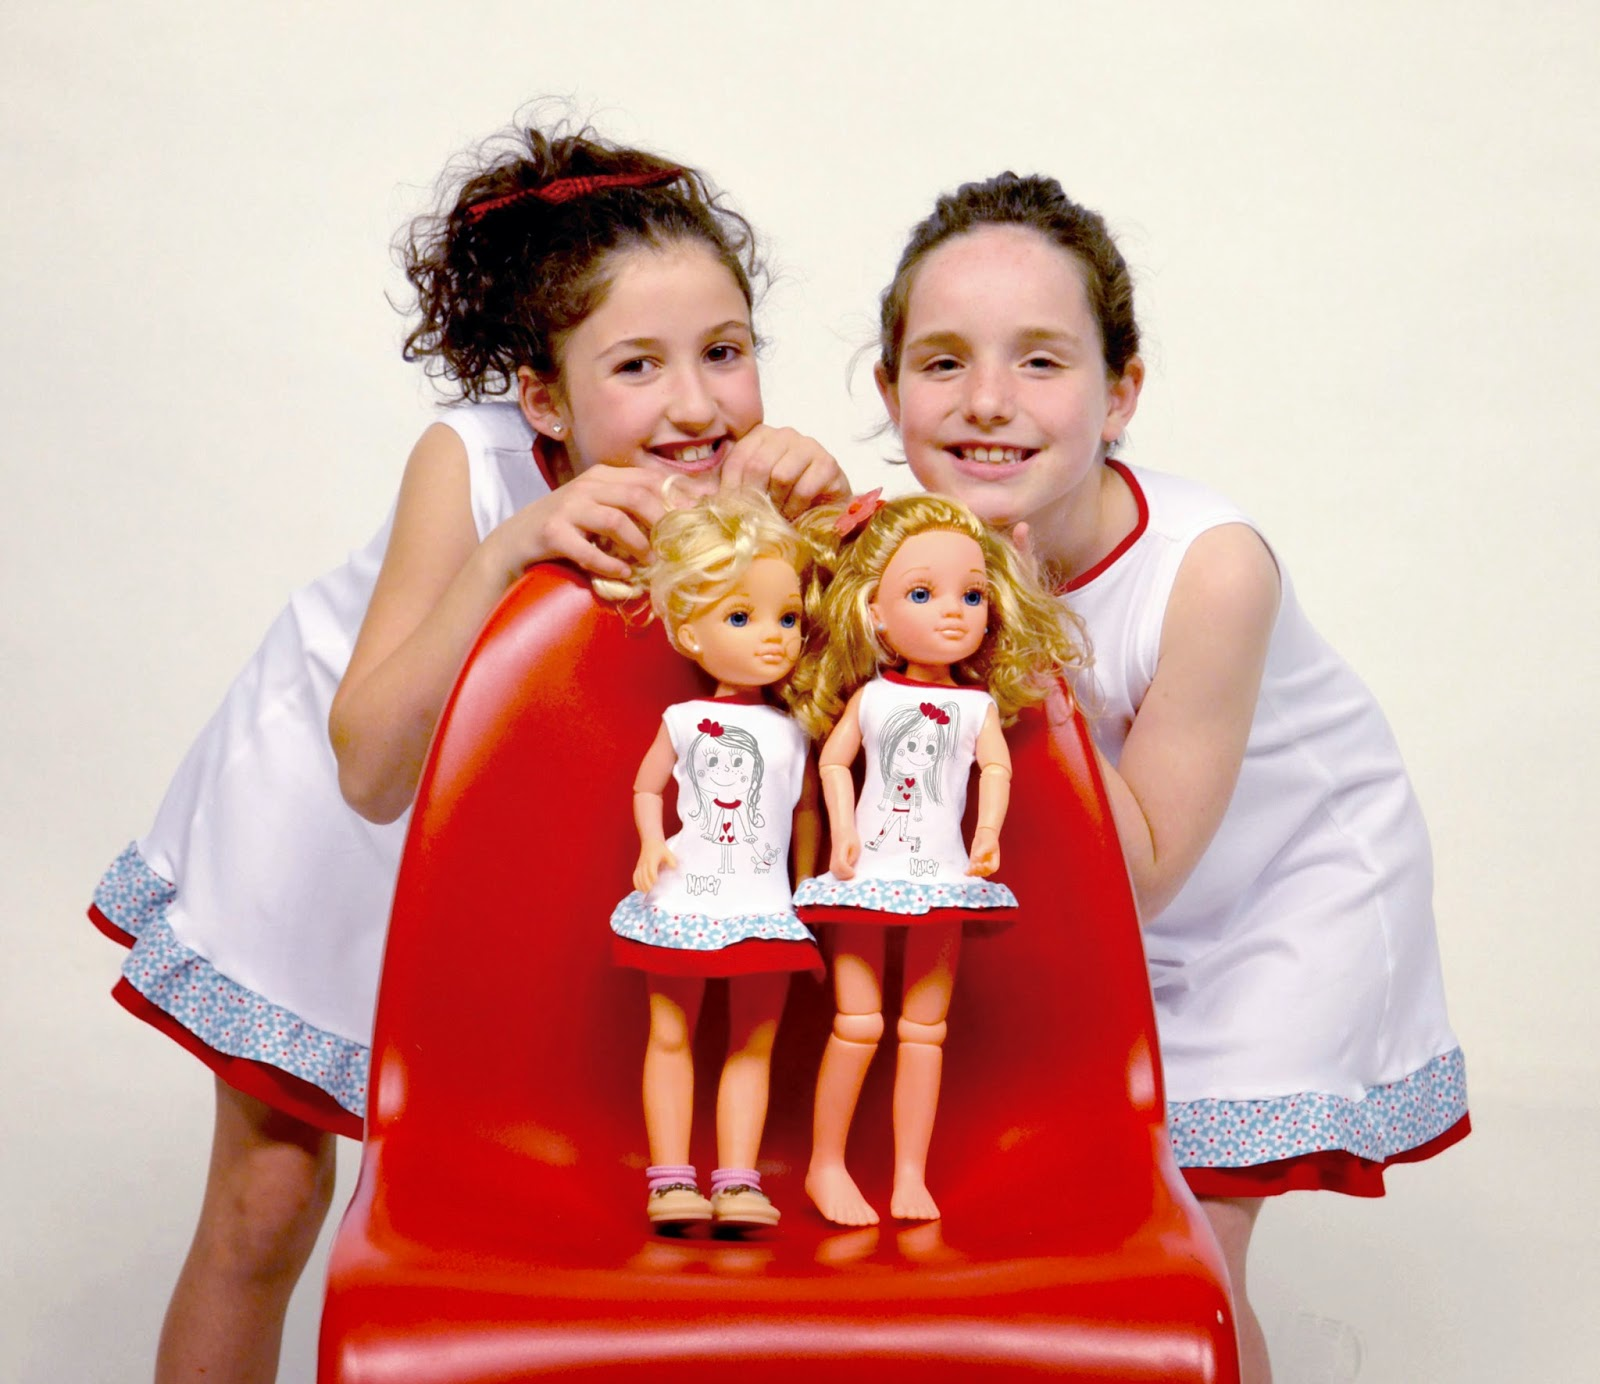 Concurso Nancy y Kiddy mini model